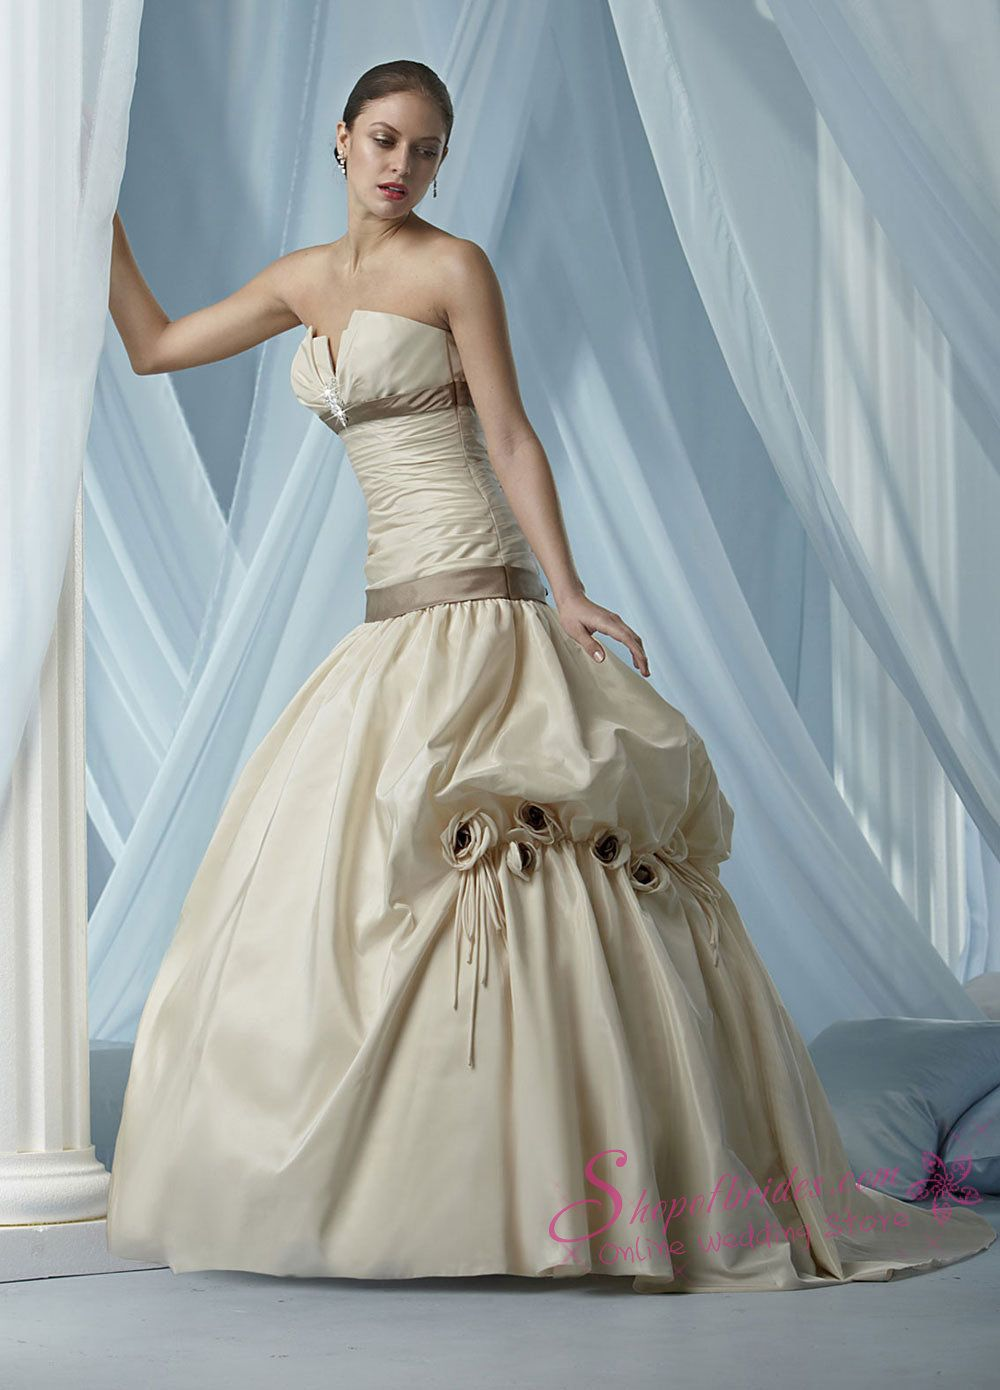 Strapless ball gown wedding dresses  Ball Gown Wedding Dresses  Wedding Gowns  Pinterest  Ball gowns